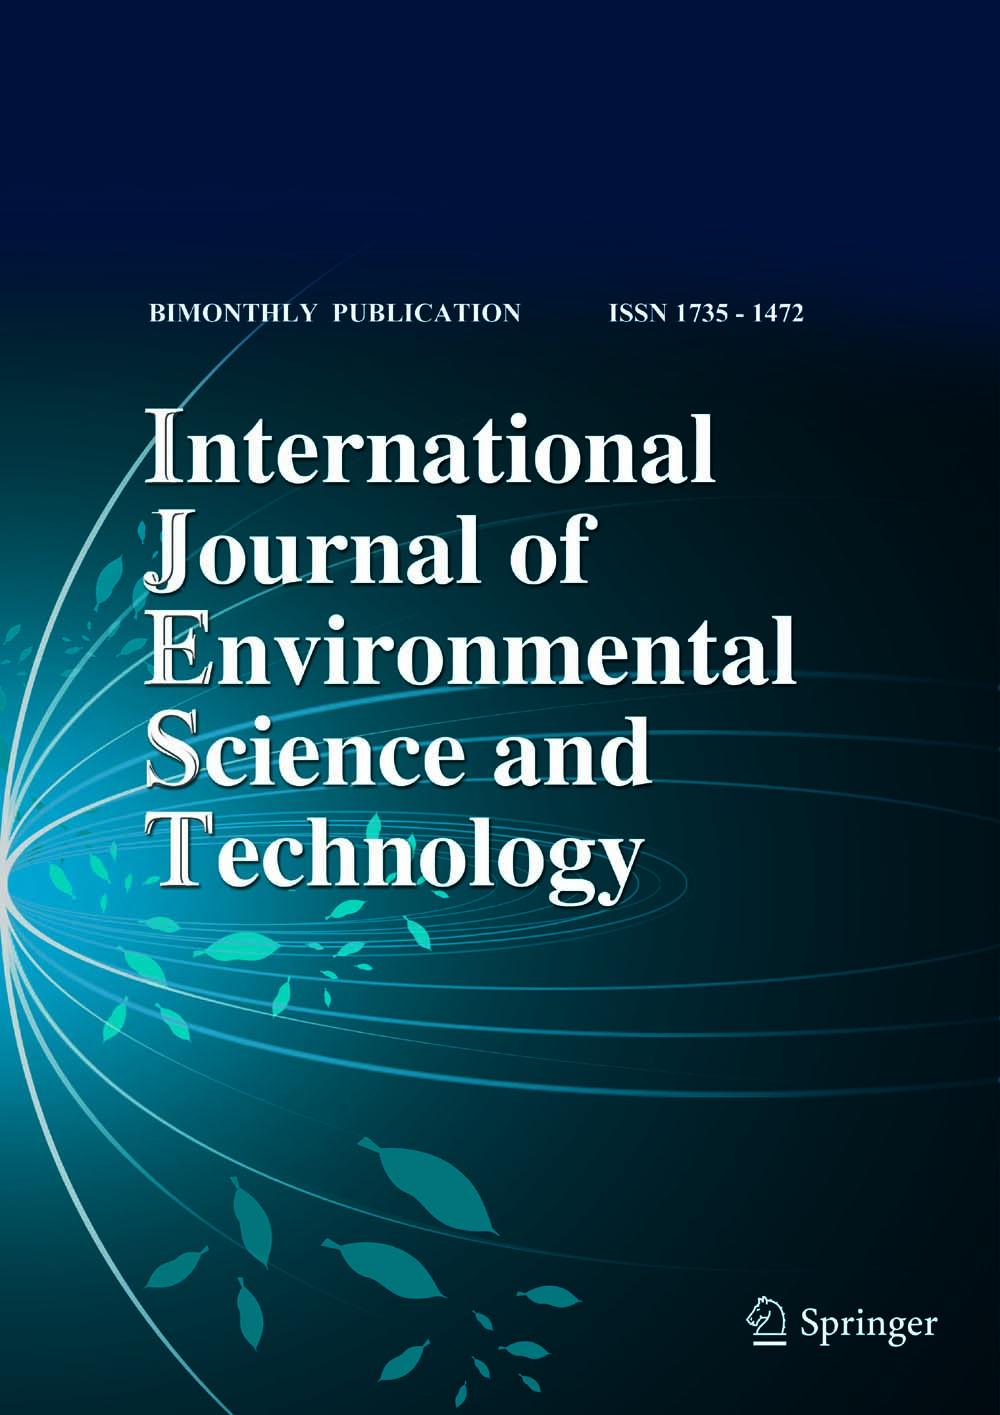 (International Journal of Environmental science &Technology (IJEST